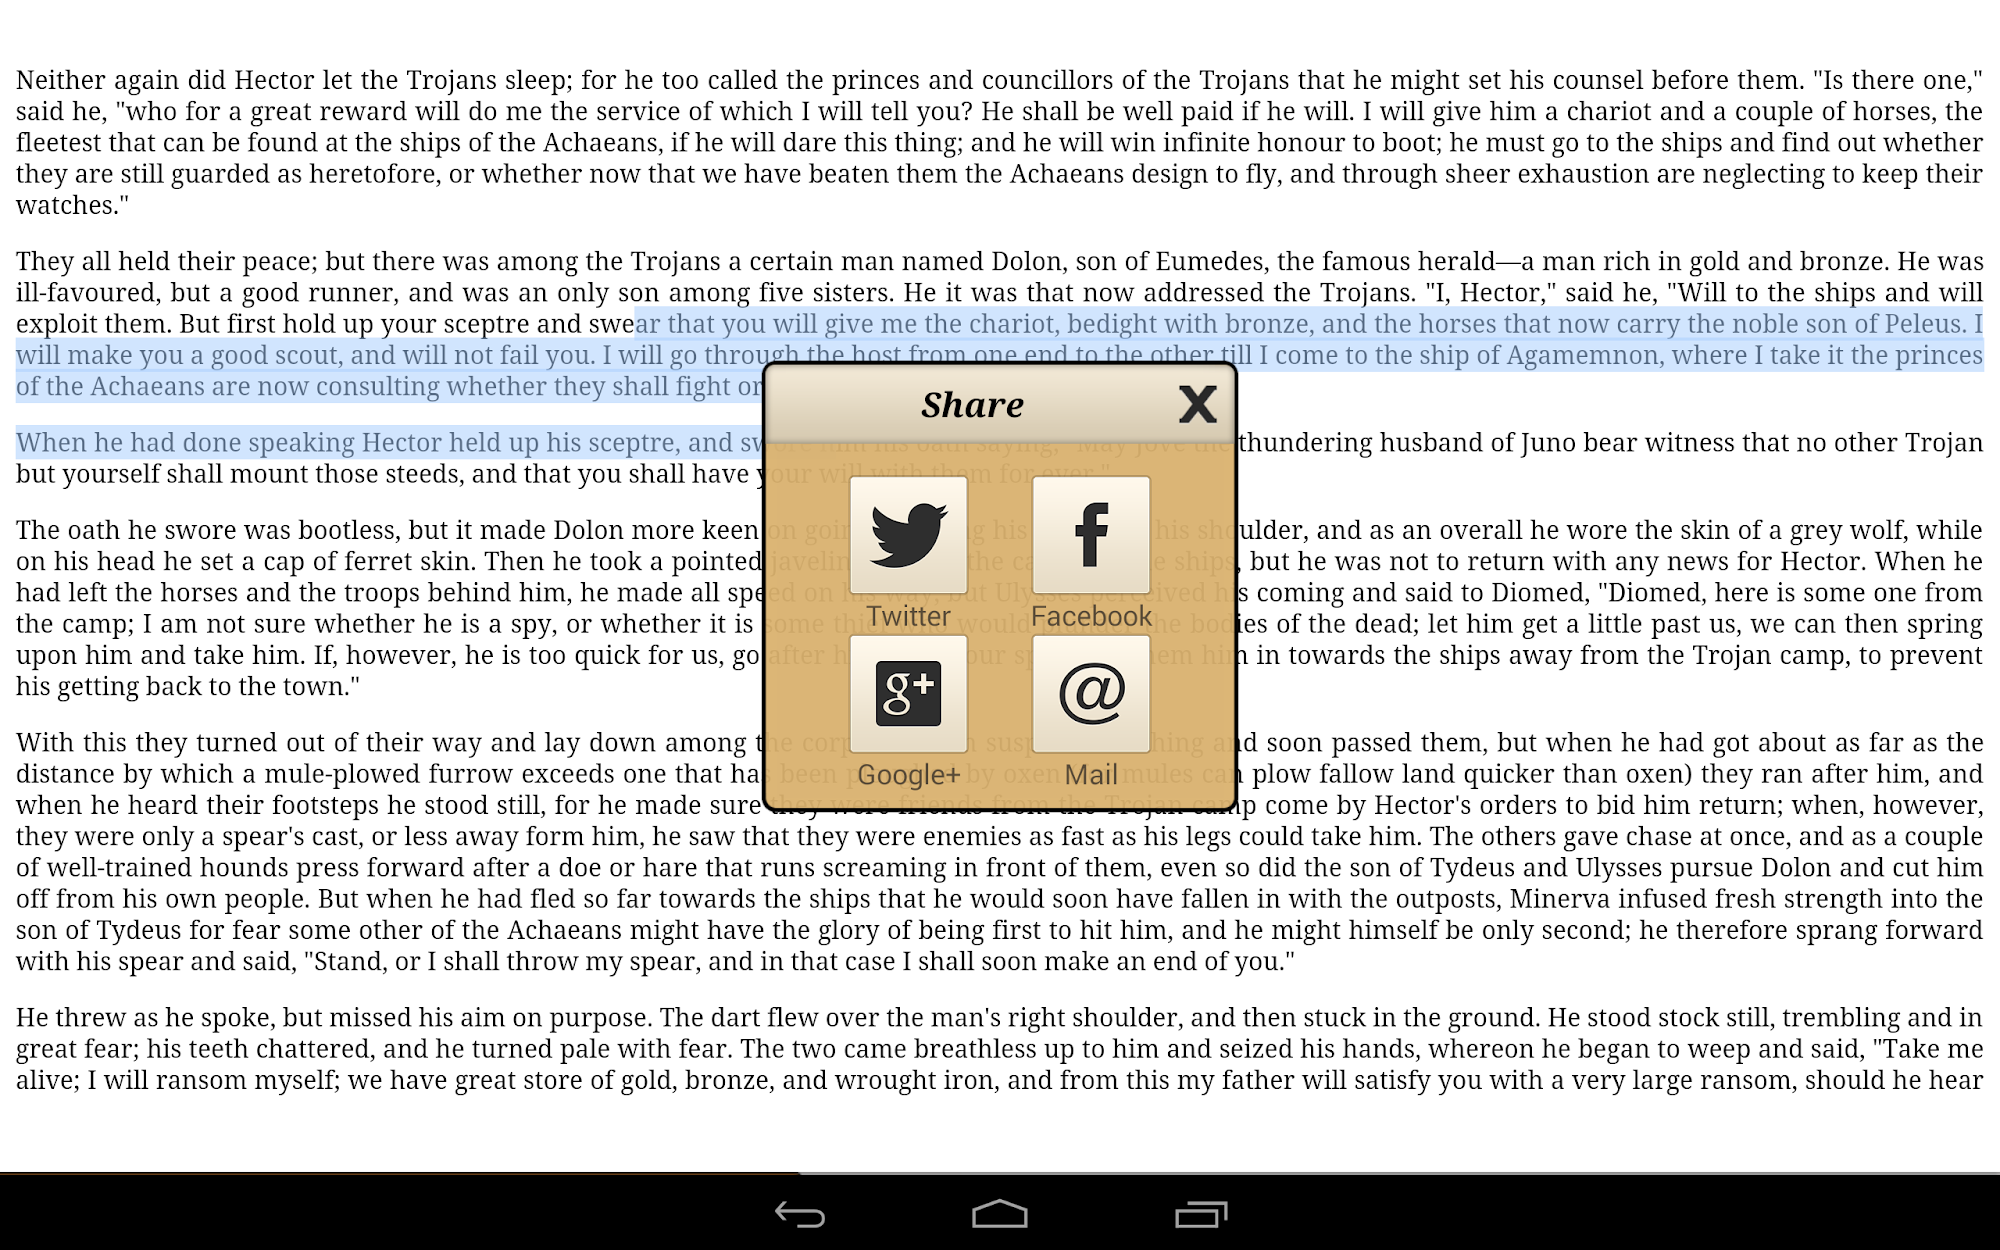 Ebook Reader screenshot #10